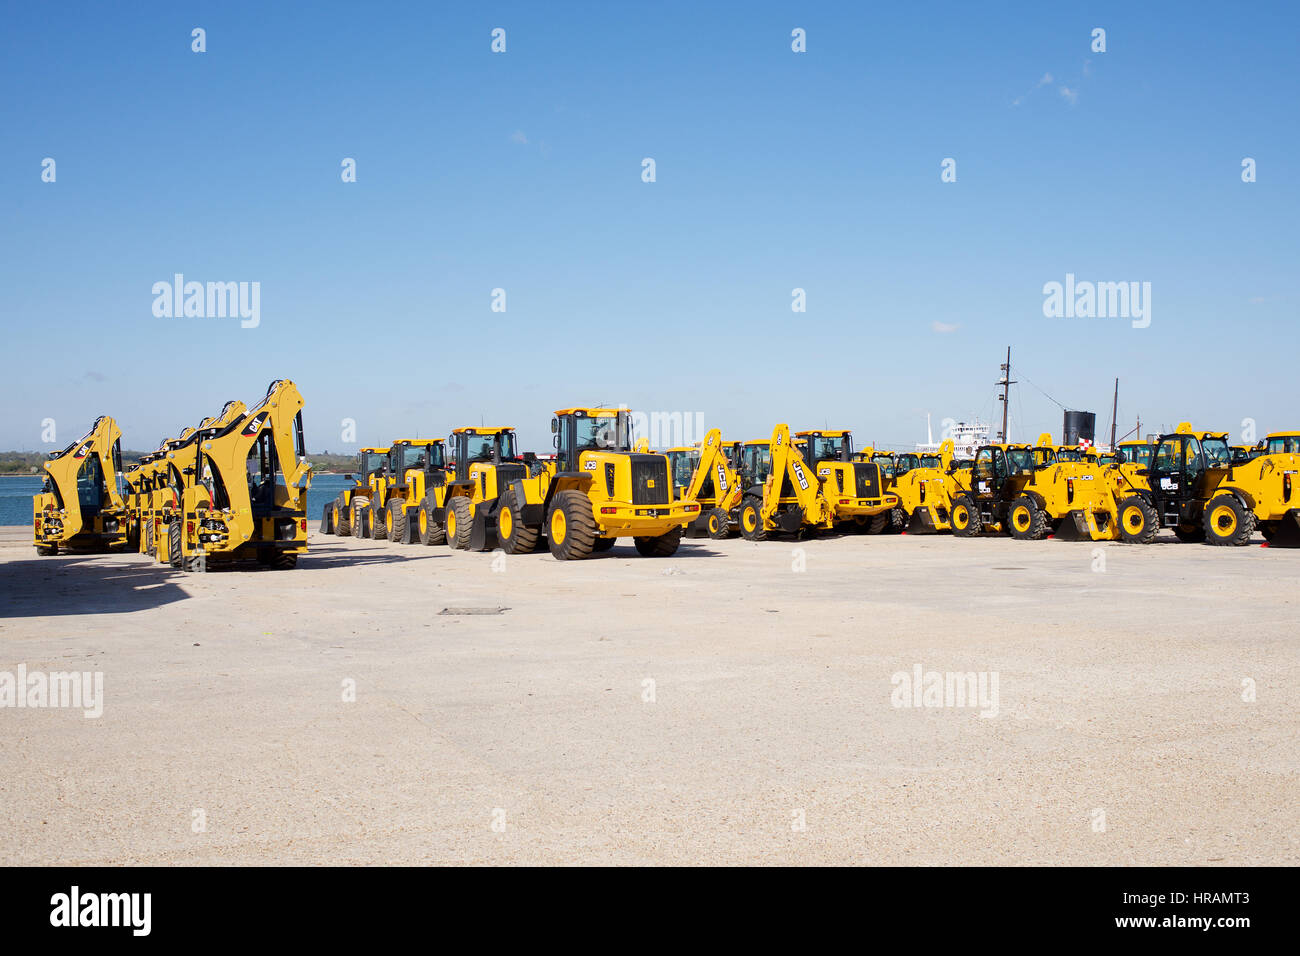 Vehicles stored at The Port of Southampton, England - Stock Image